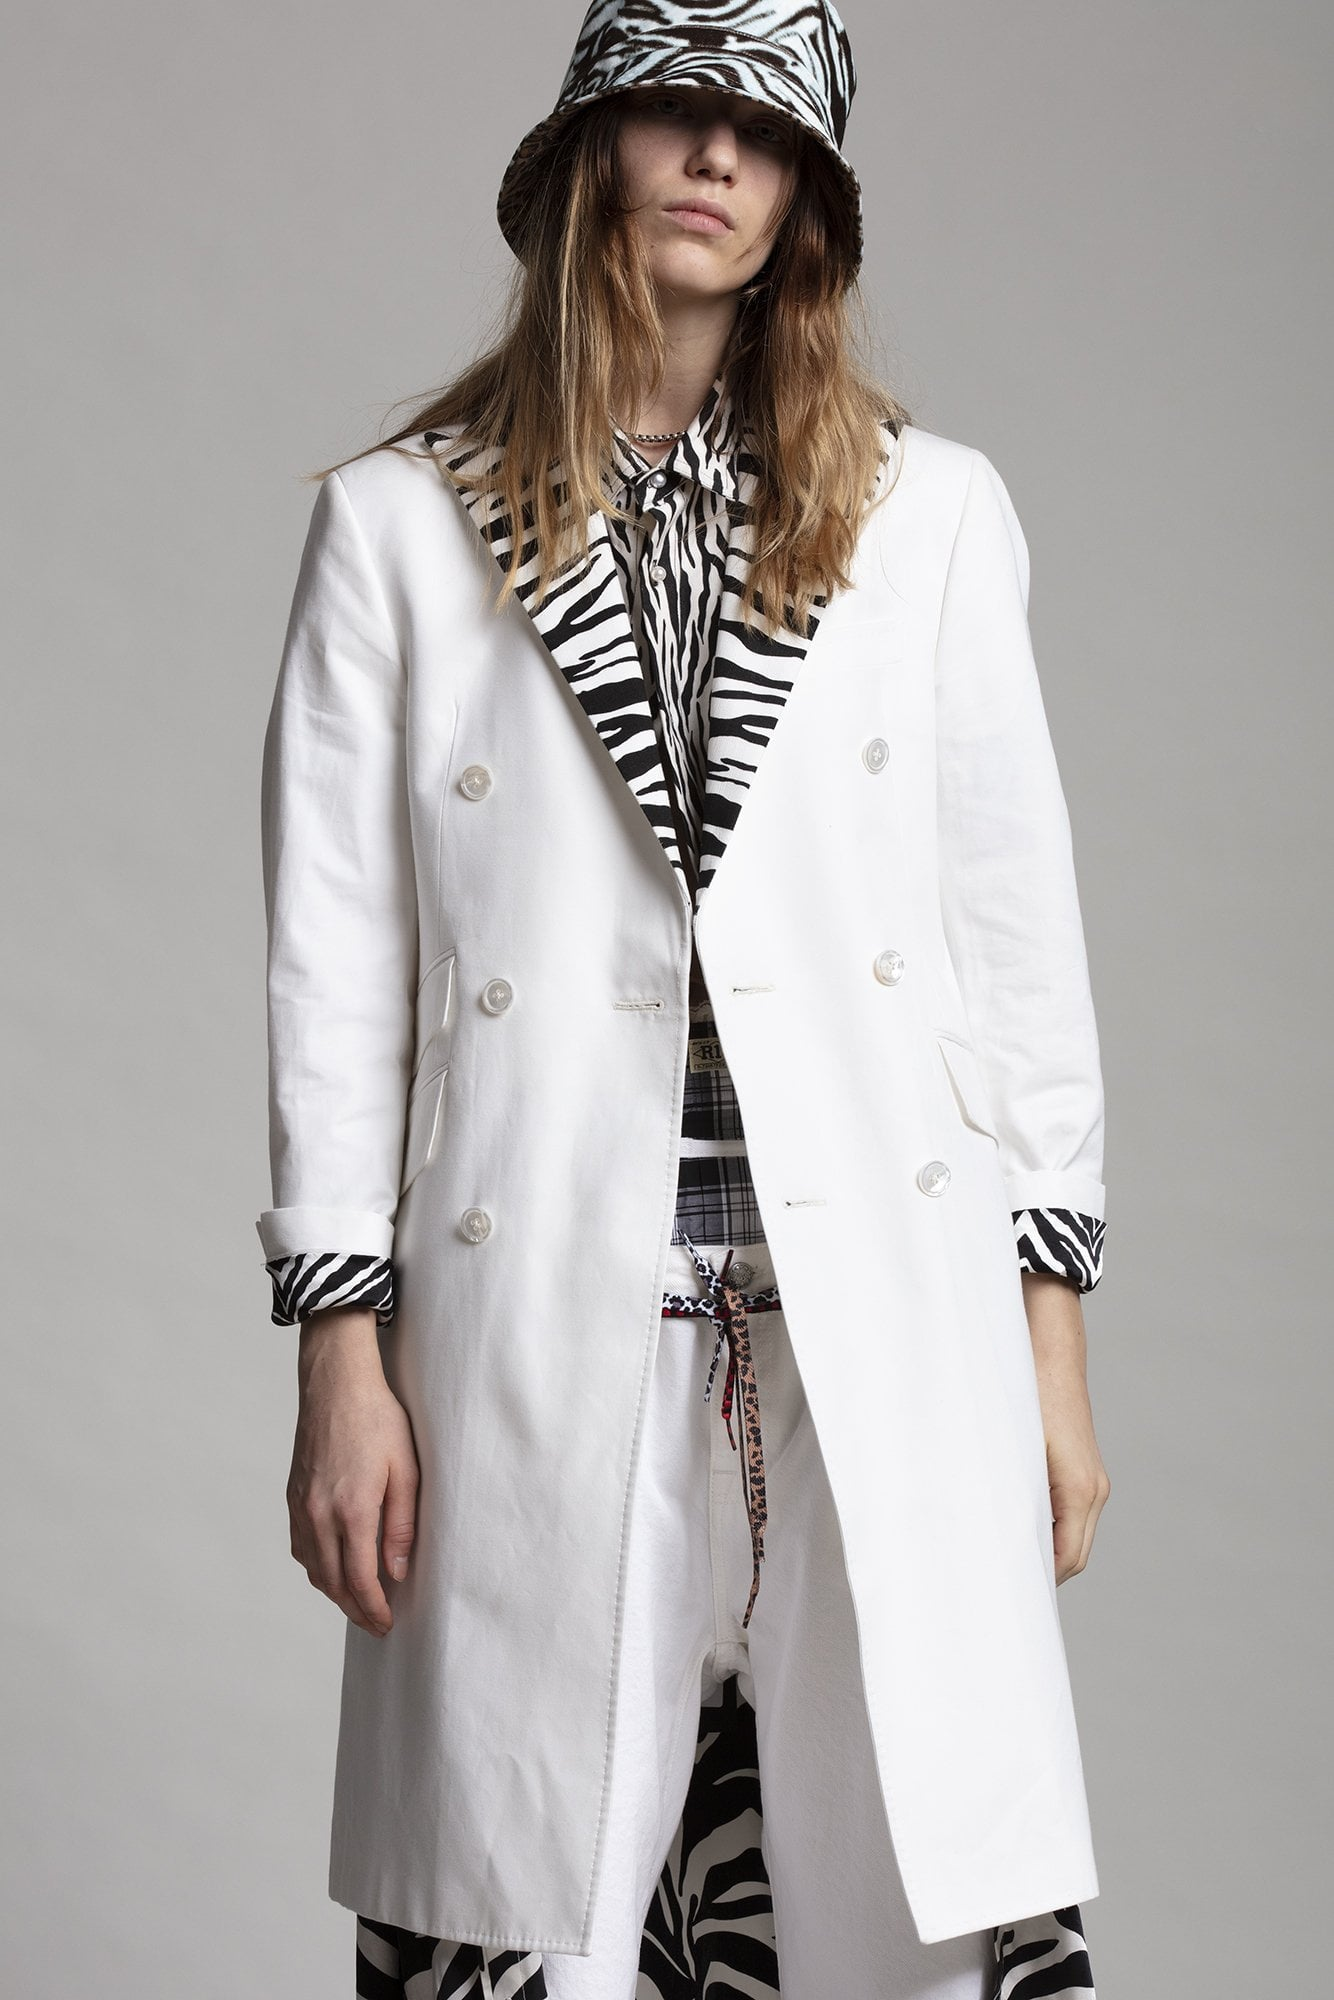 Peak Lapel Double Breasted Coat - White with Zebra